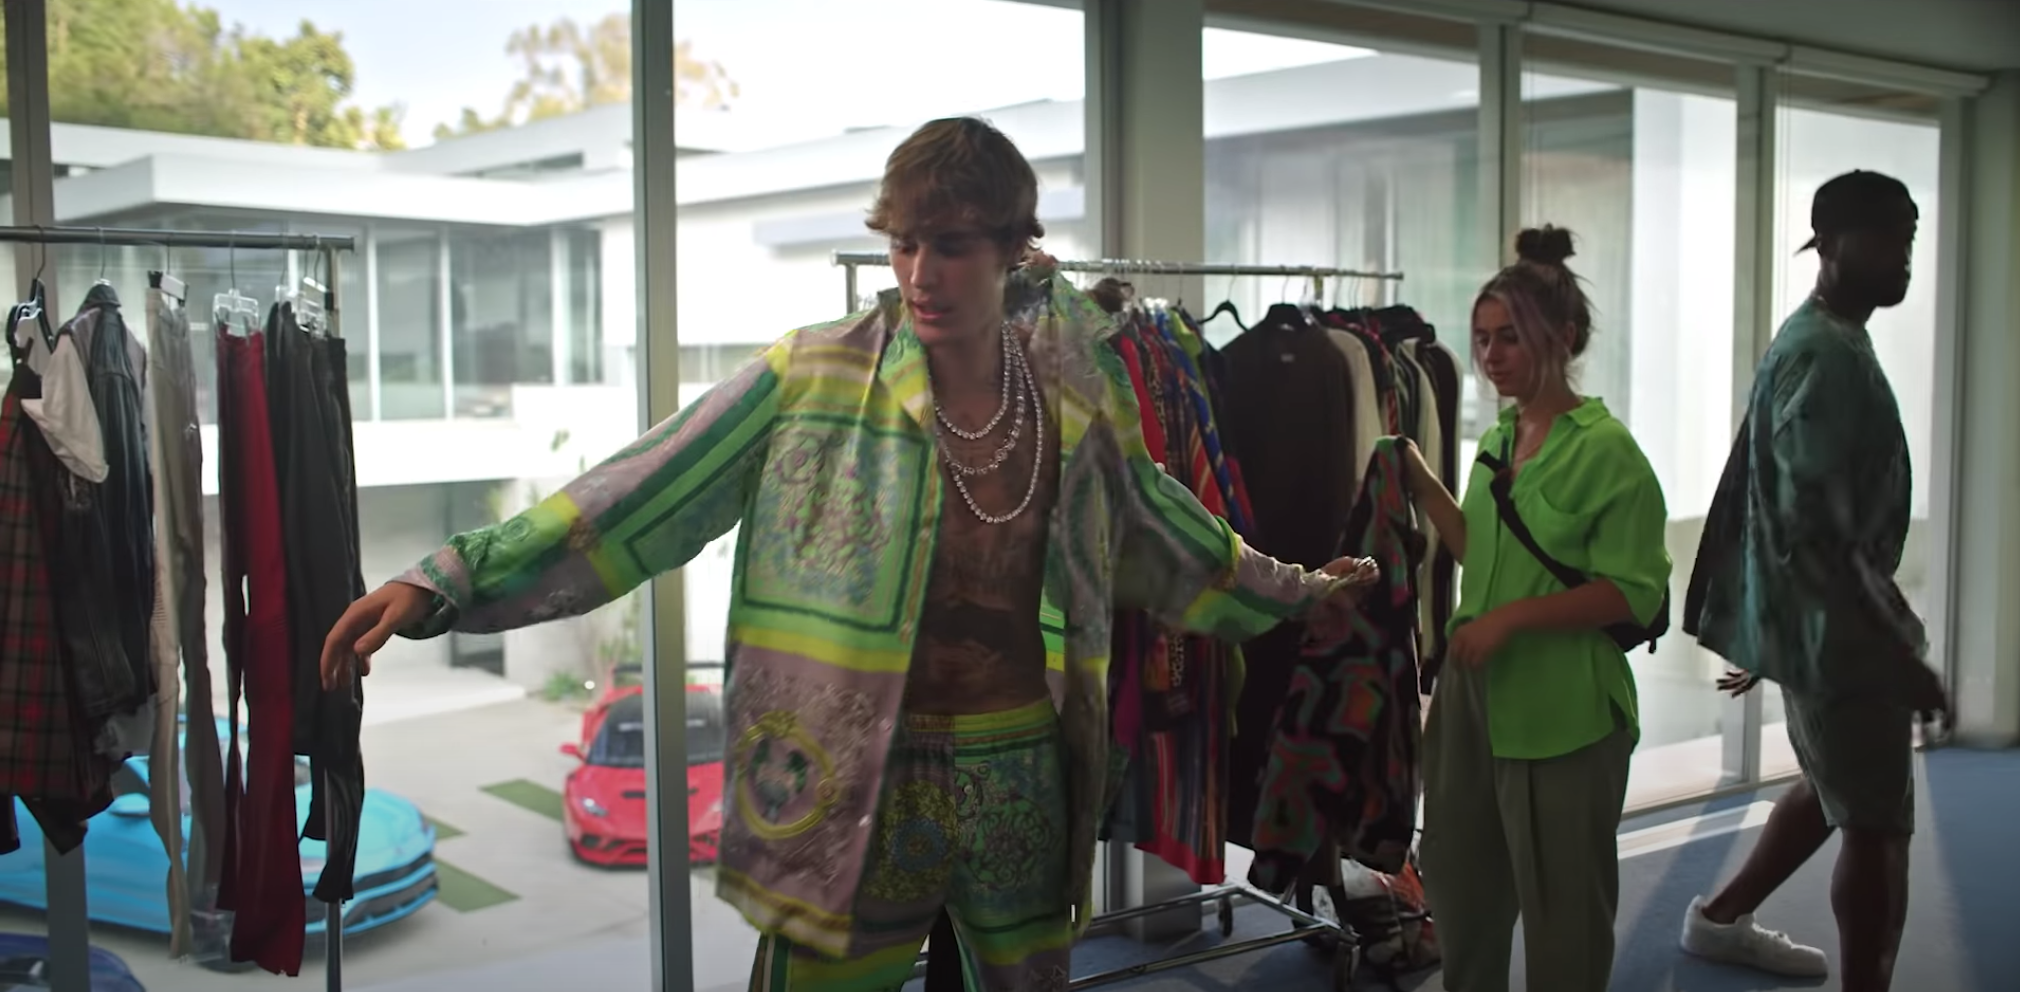 Justin gets changed into a different outfit by stylists